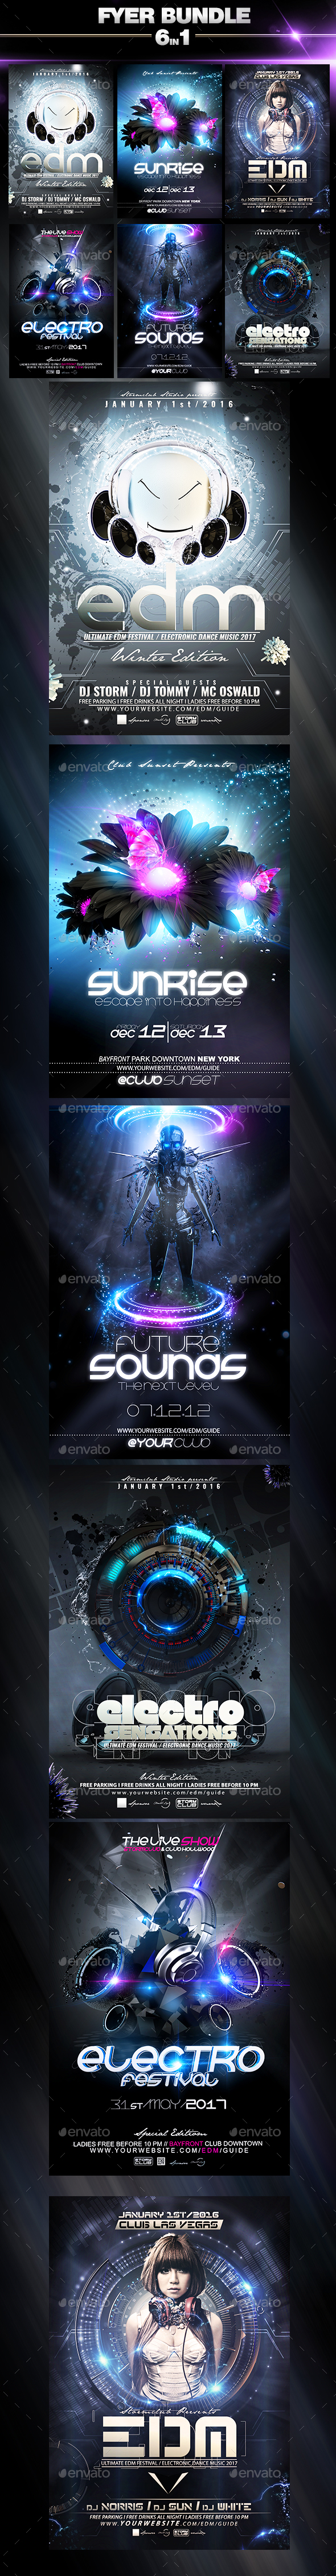 Party Flyer Electro Bundle V3 - Events Flyers